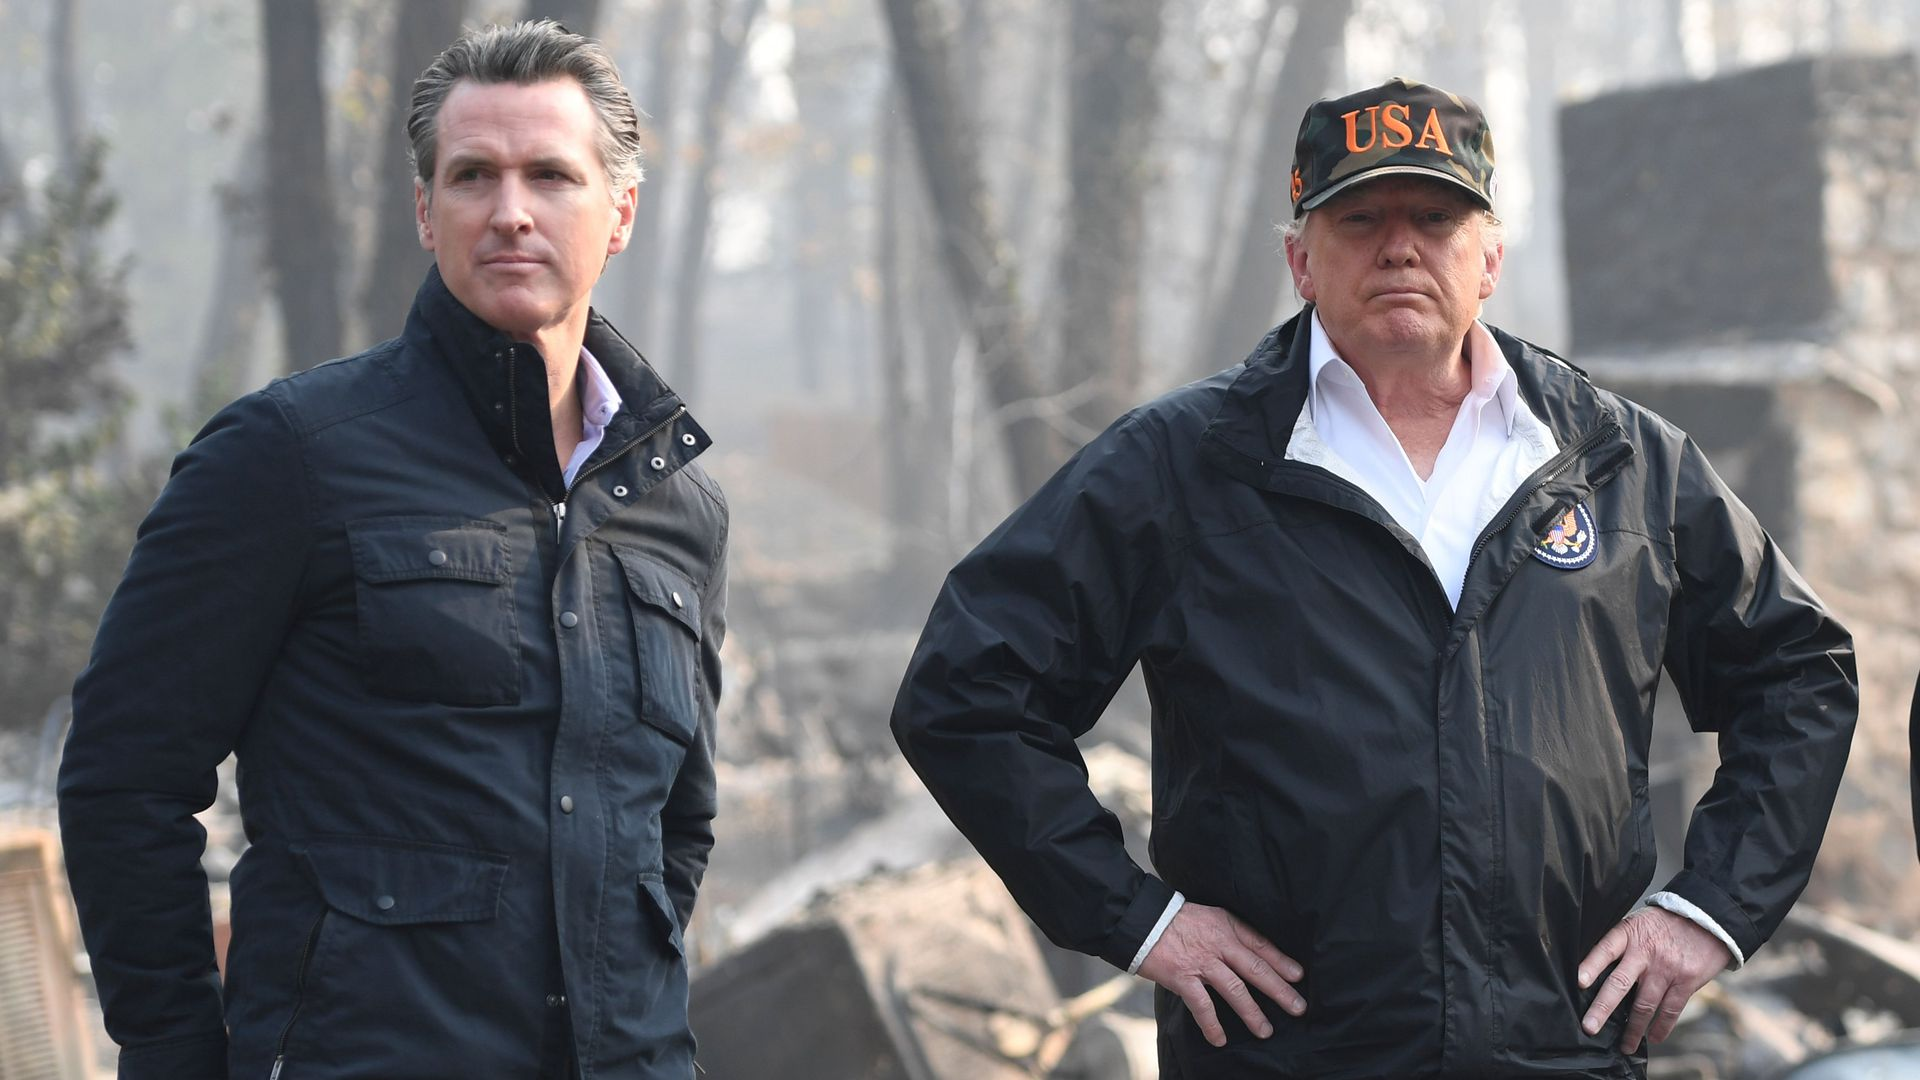 President Donald Trump with Governor of California, Gavin Newsom, as they view damage from wildfires in Paradise, California on November 17, 2018.